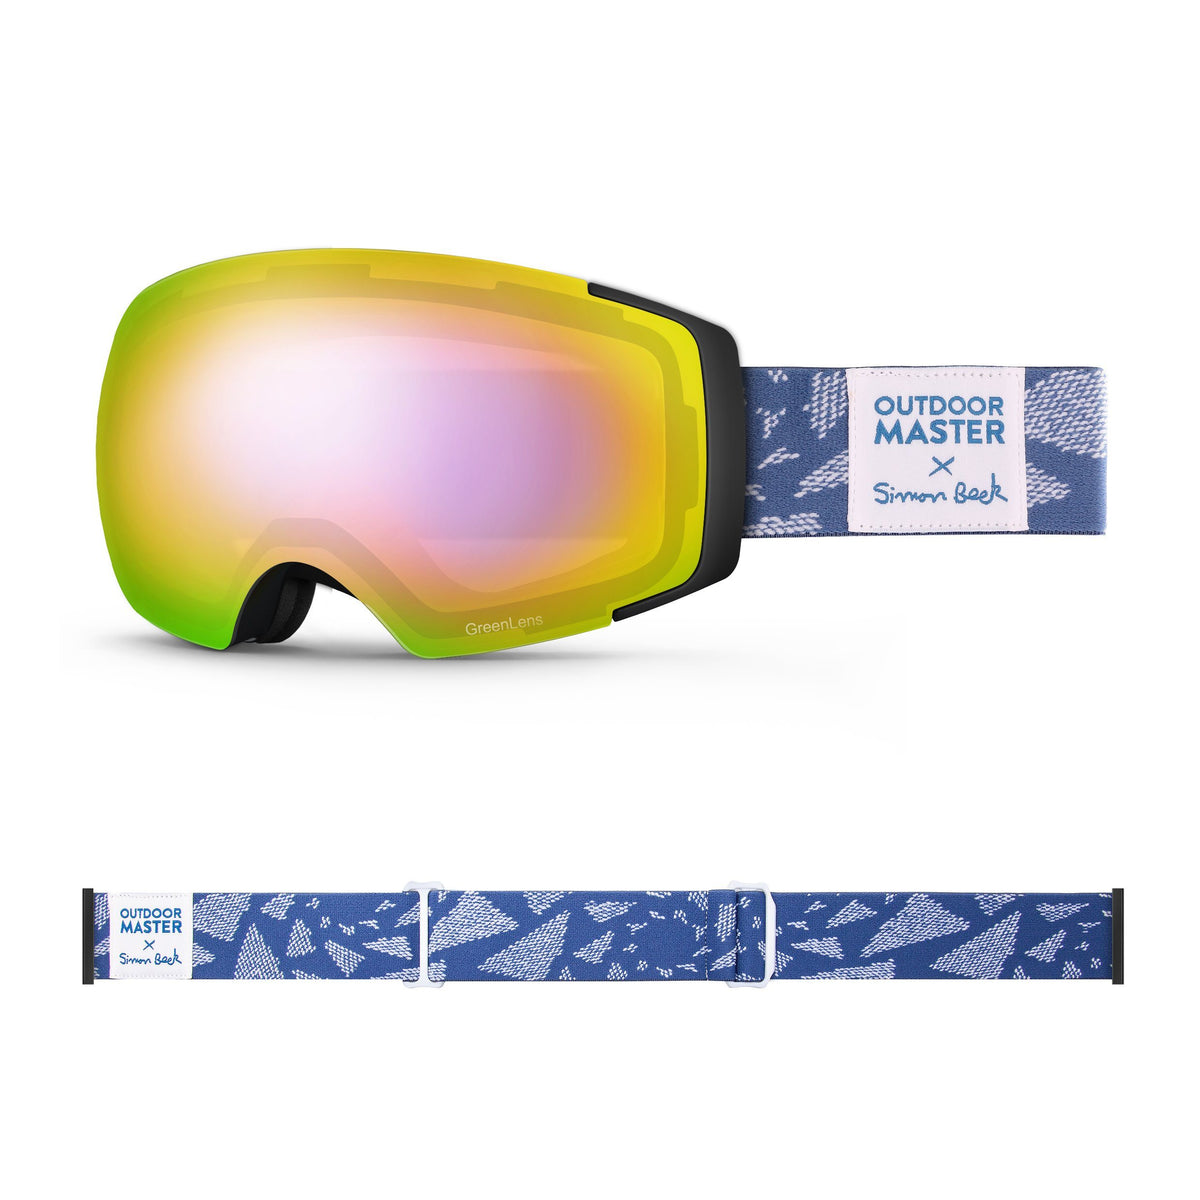 OutdoorMaster x Simon Beck Ski Goggles Pro Series - Snowshoeing Art Limited Edition OutdoorMaster GreenLens VLT 45% TAC Purple with REVO Red Polarized Flying Triangles